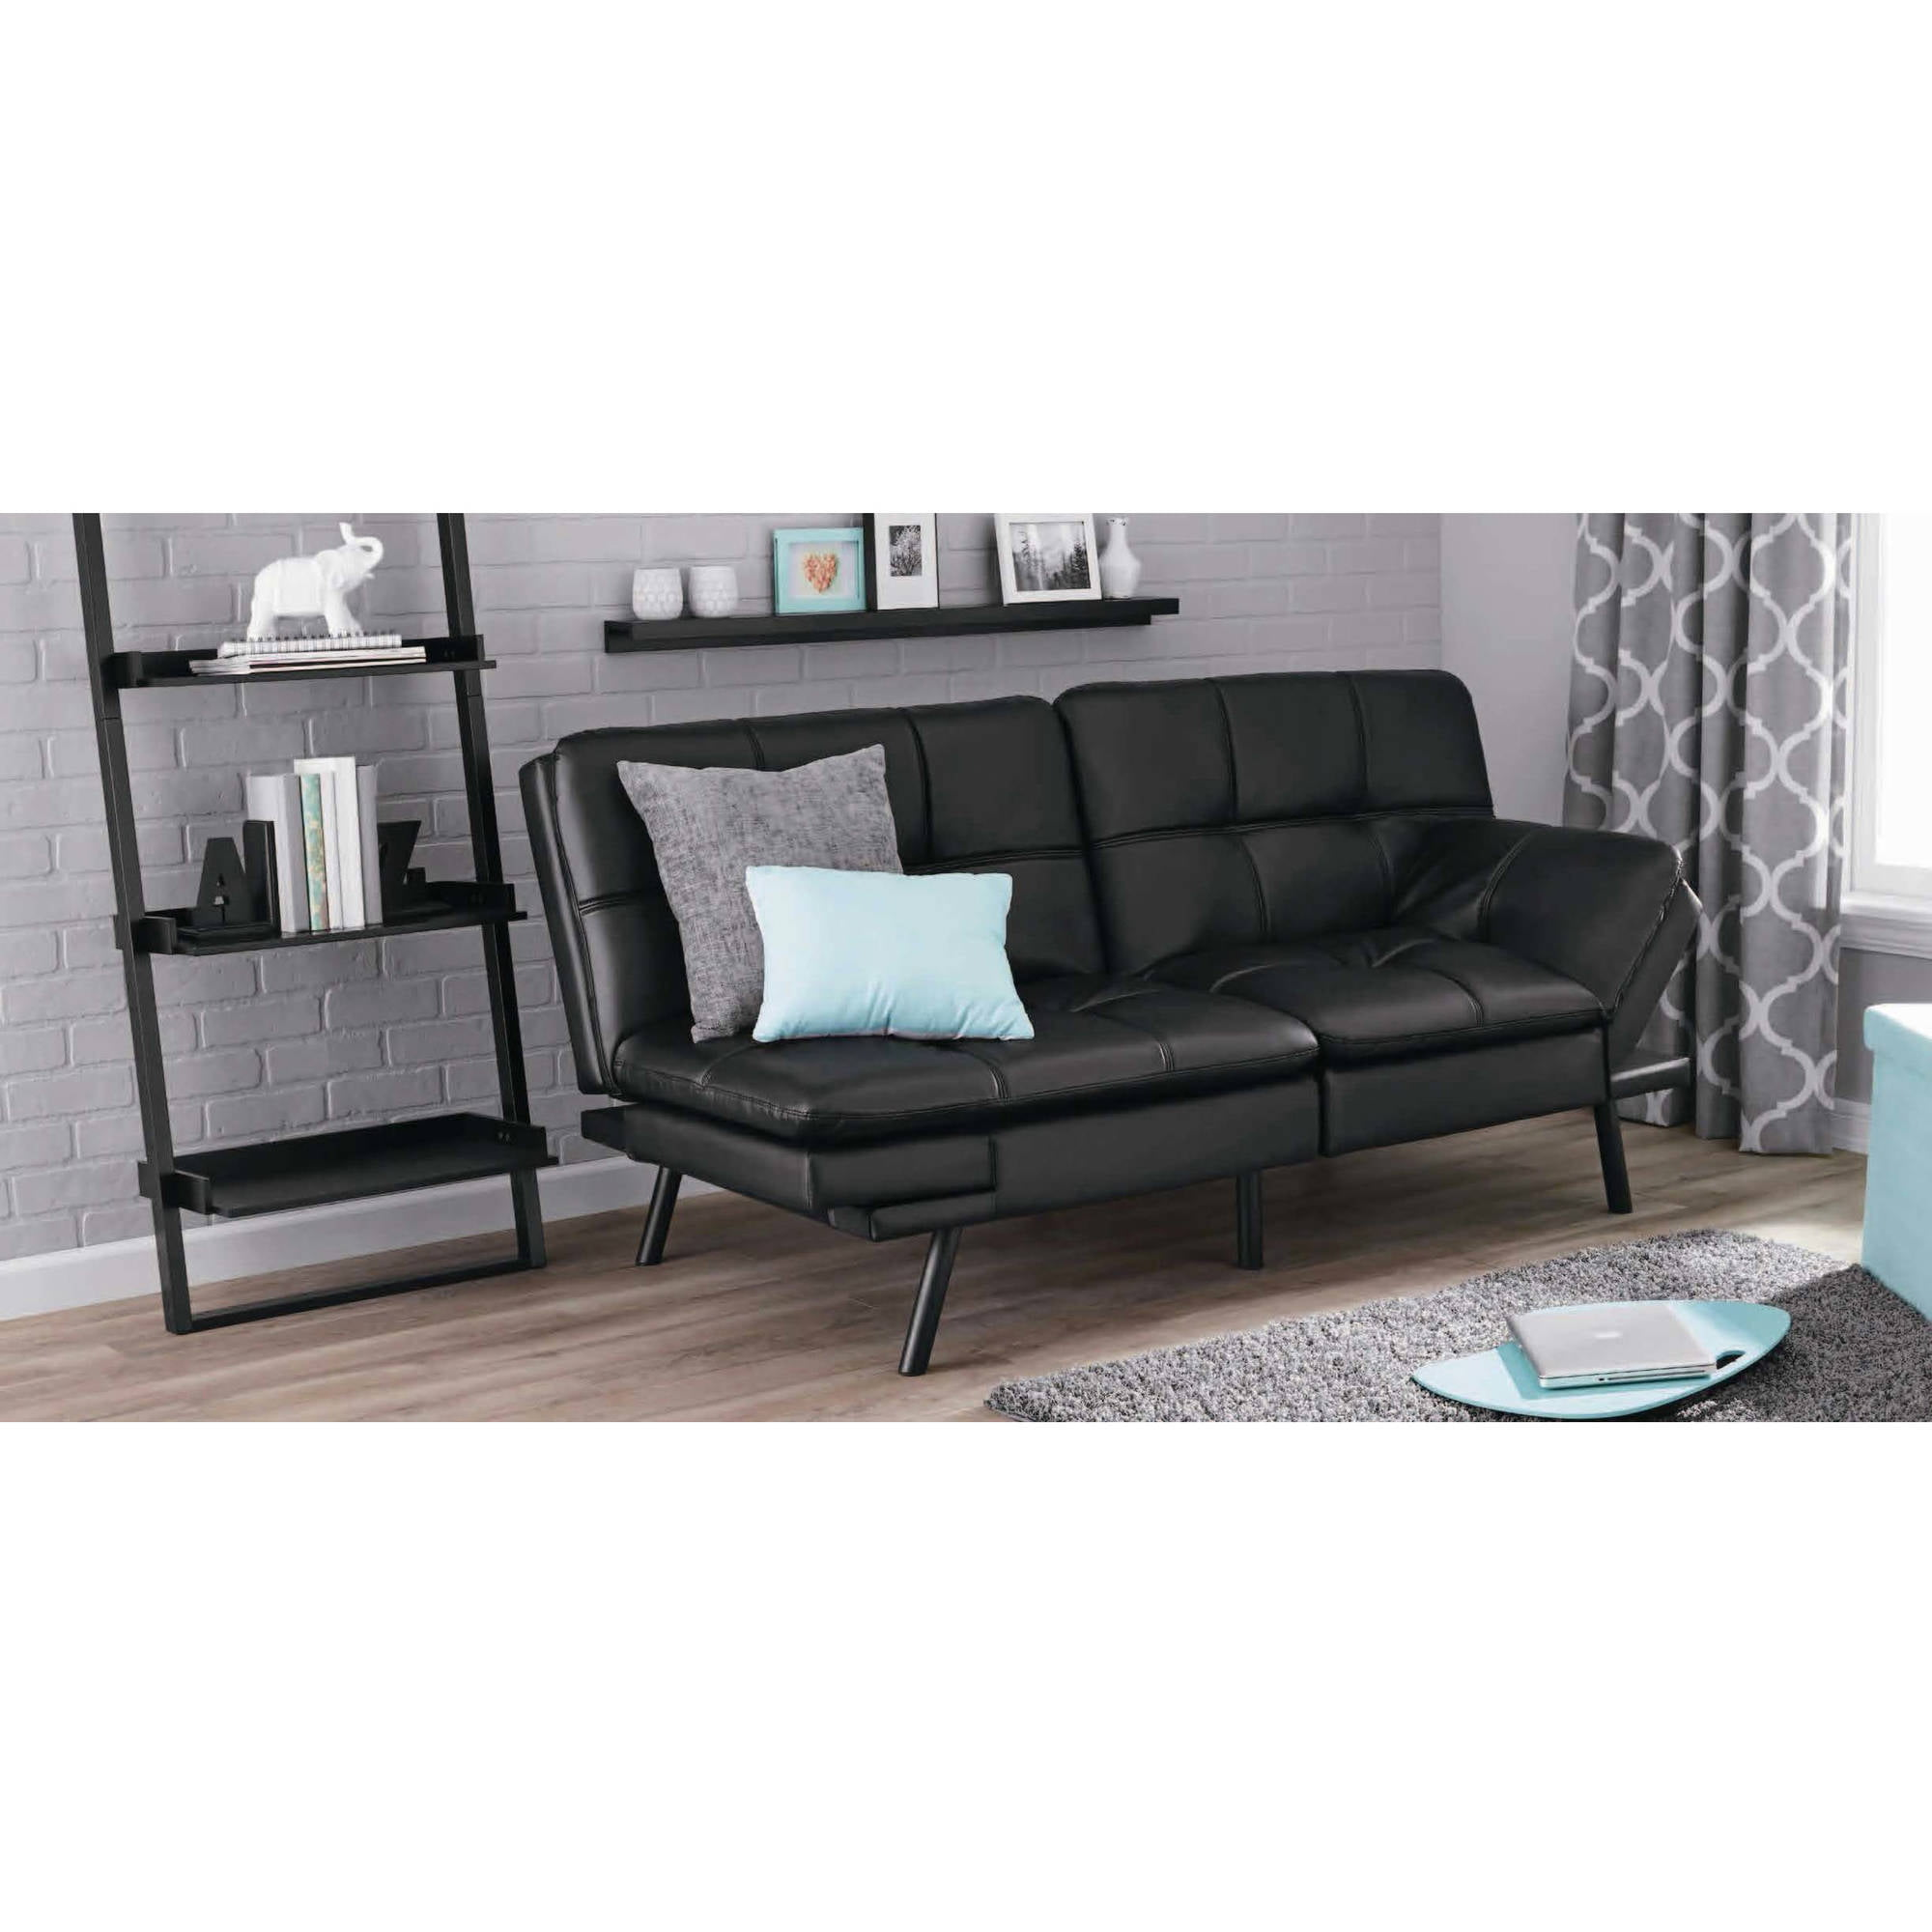 Mainstays Memory Foam Futon Multiple Colors Walmart